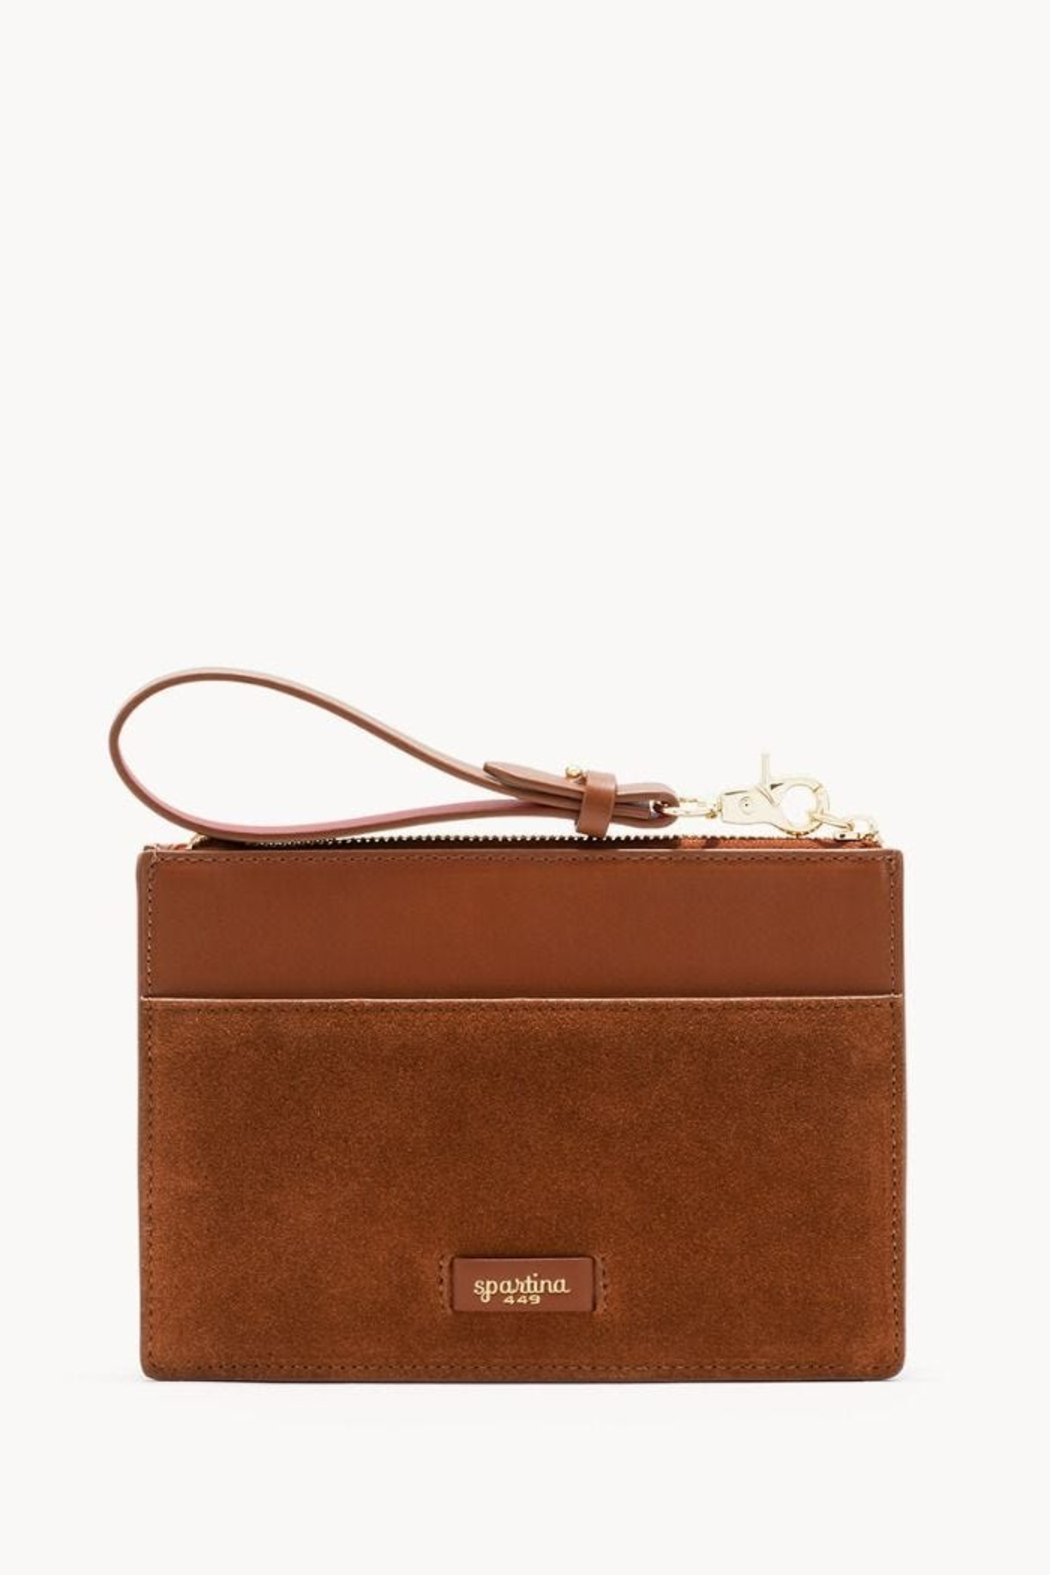 Spartina 449 Sophie Wristlet RFID Protection - Side Cropped Image